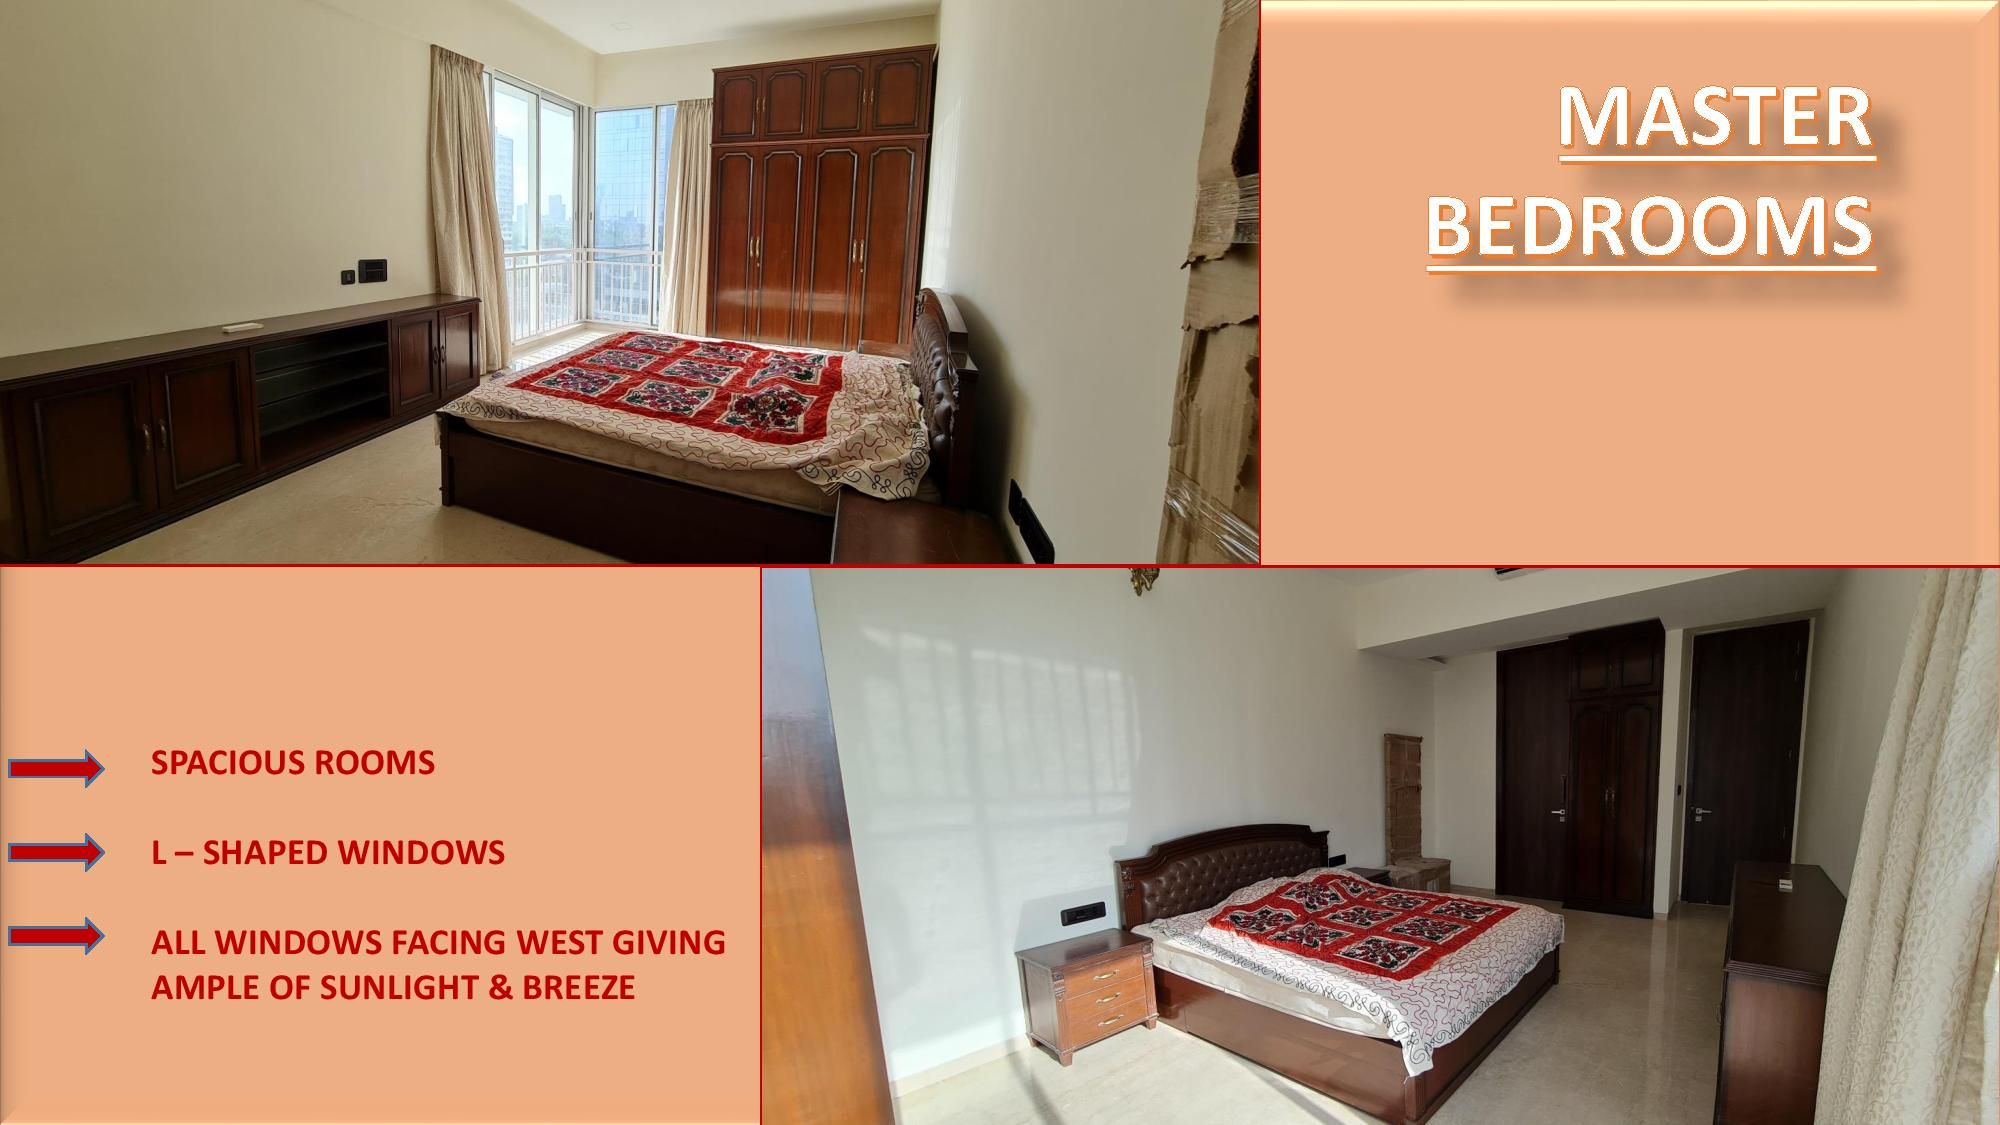 4 Bhk for Sale in Worli @ 13 Cr